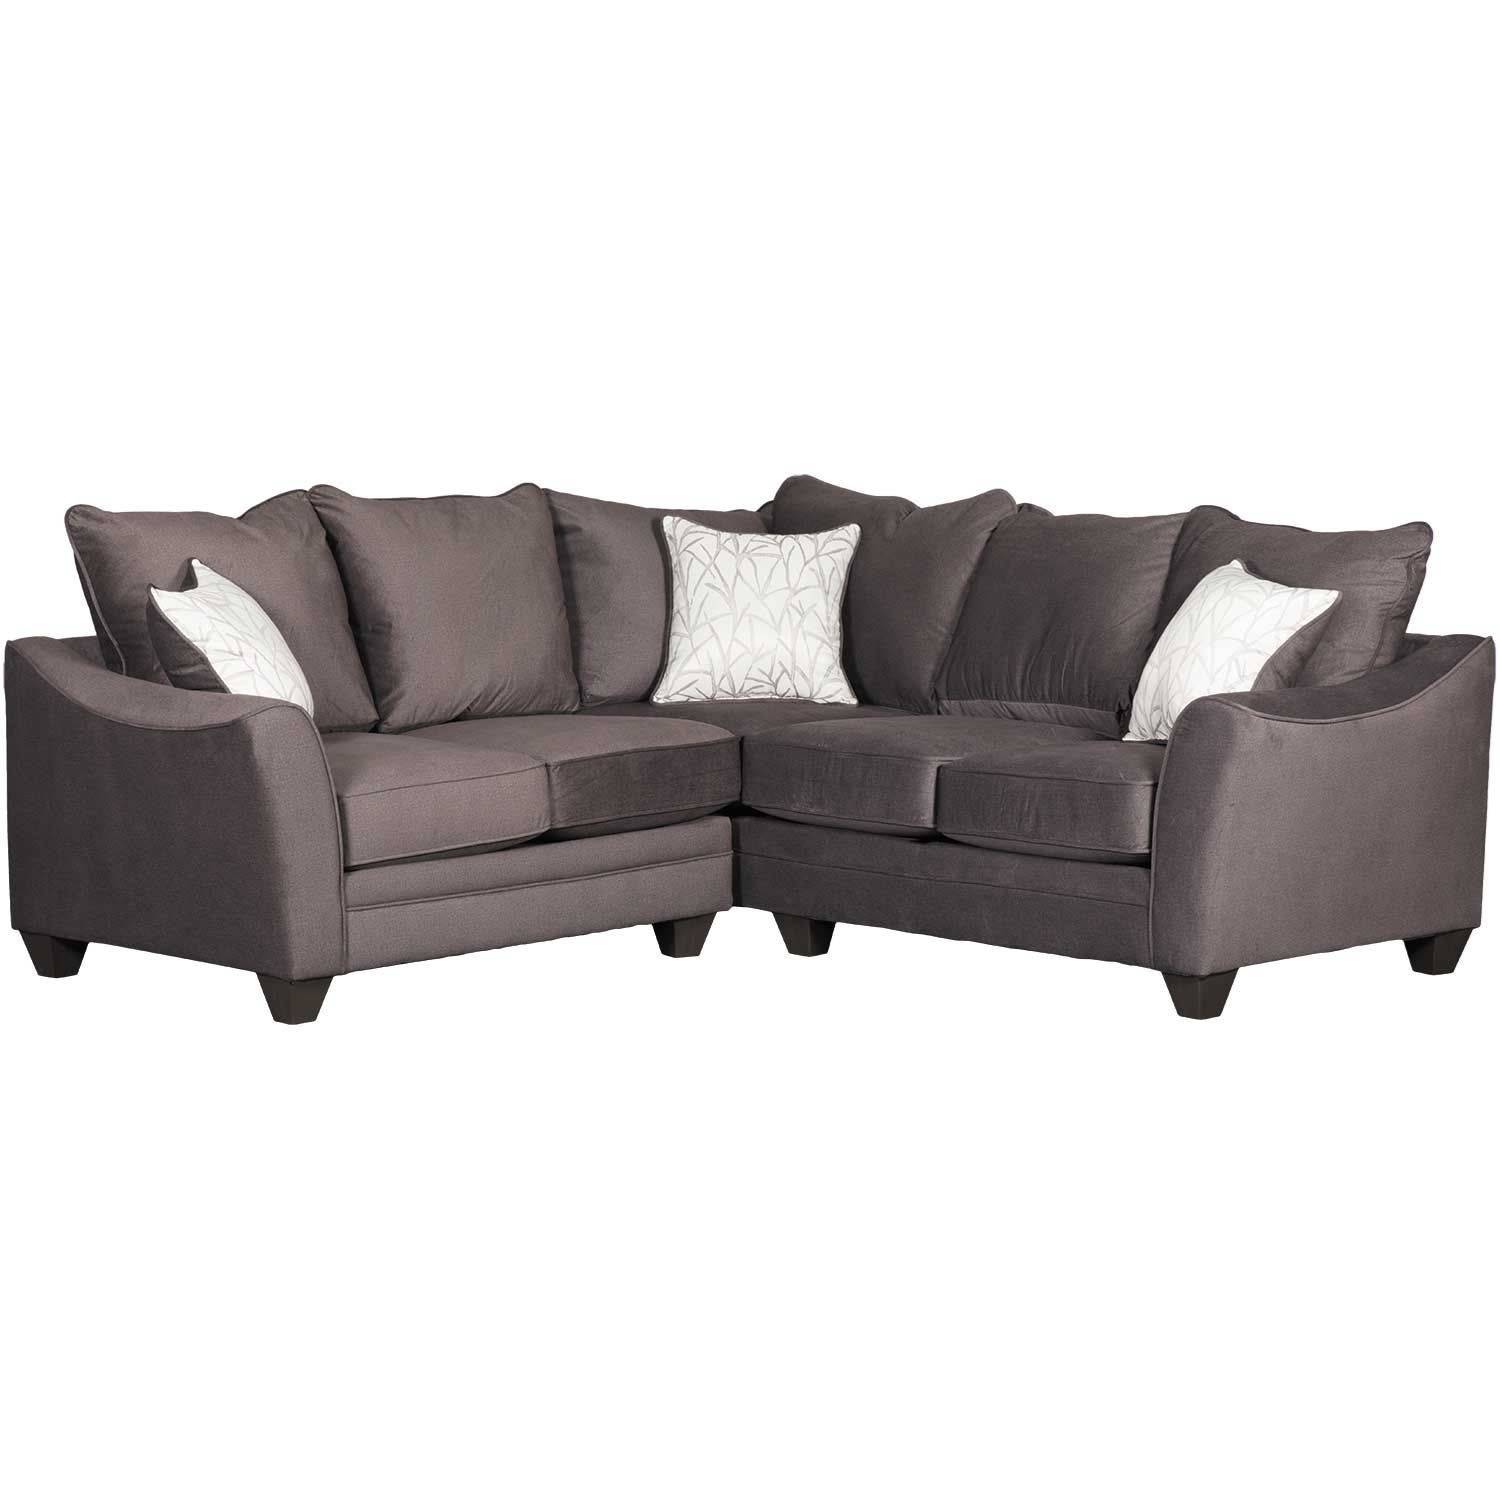 Flannel Seal 2 Piece Sectional With Raf Sofa | 3810/3816 | American regarding Cosmos Grey 2 Piece Sectionals With Raf Chaise (Image 10 of 30)